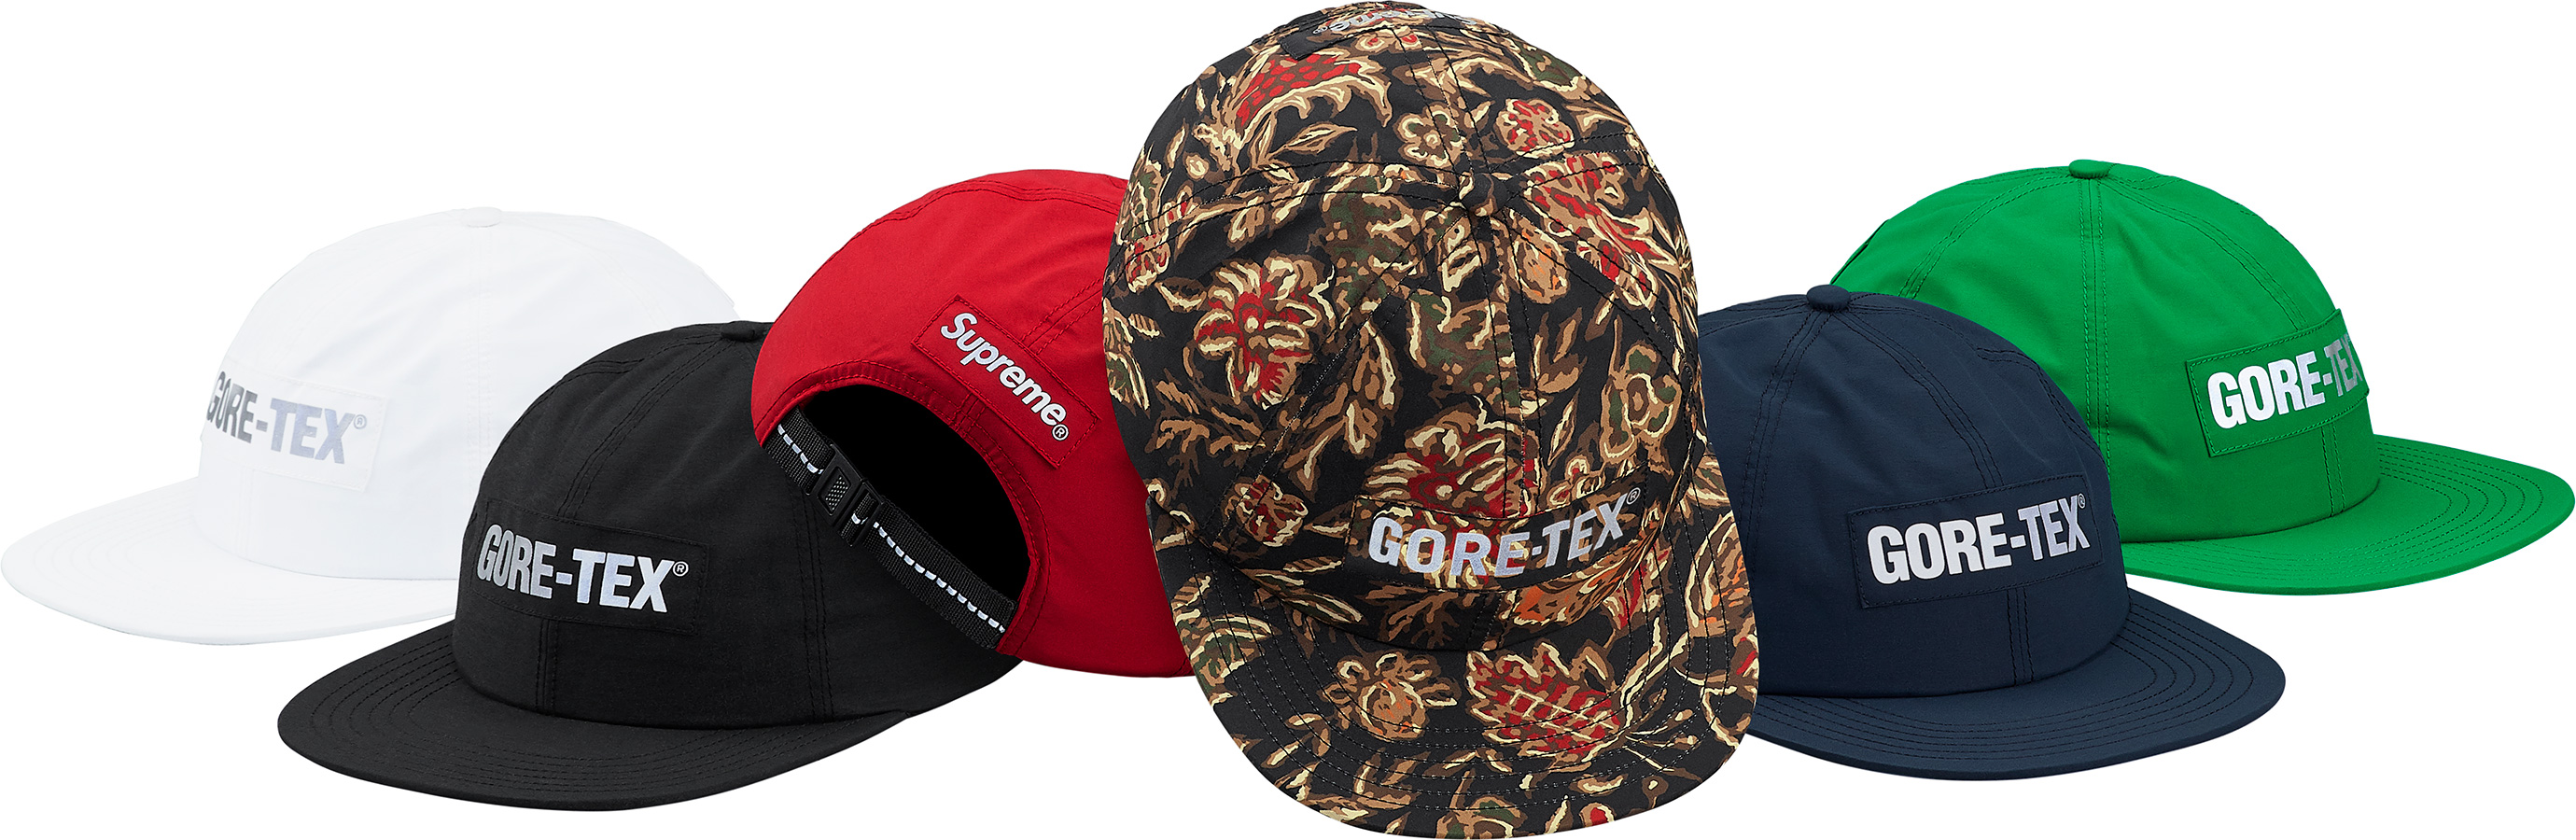 300f9a19 Details Supreme GORE-TEX 6-Panel - Supreme Community